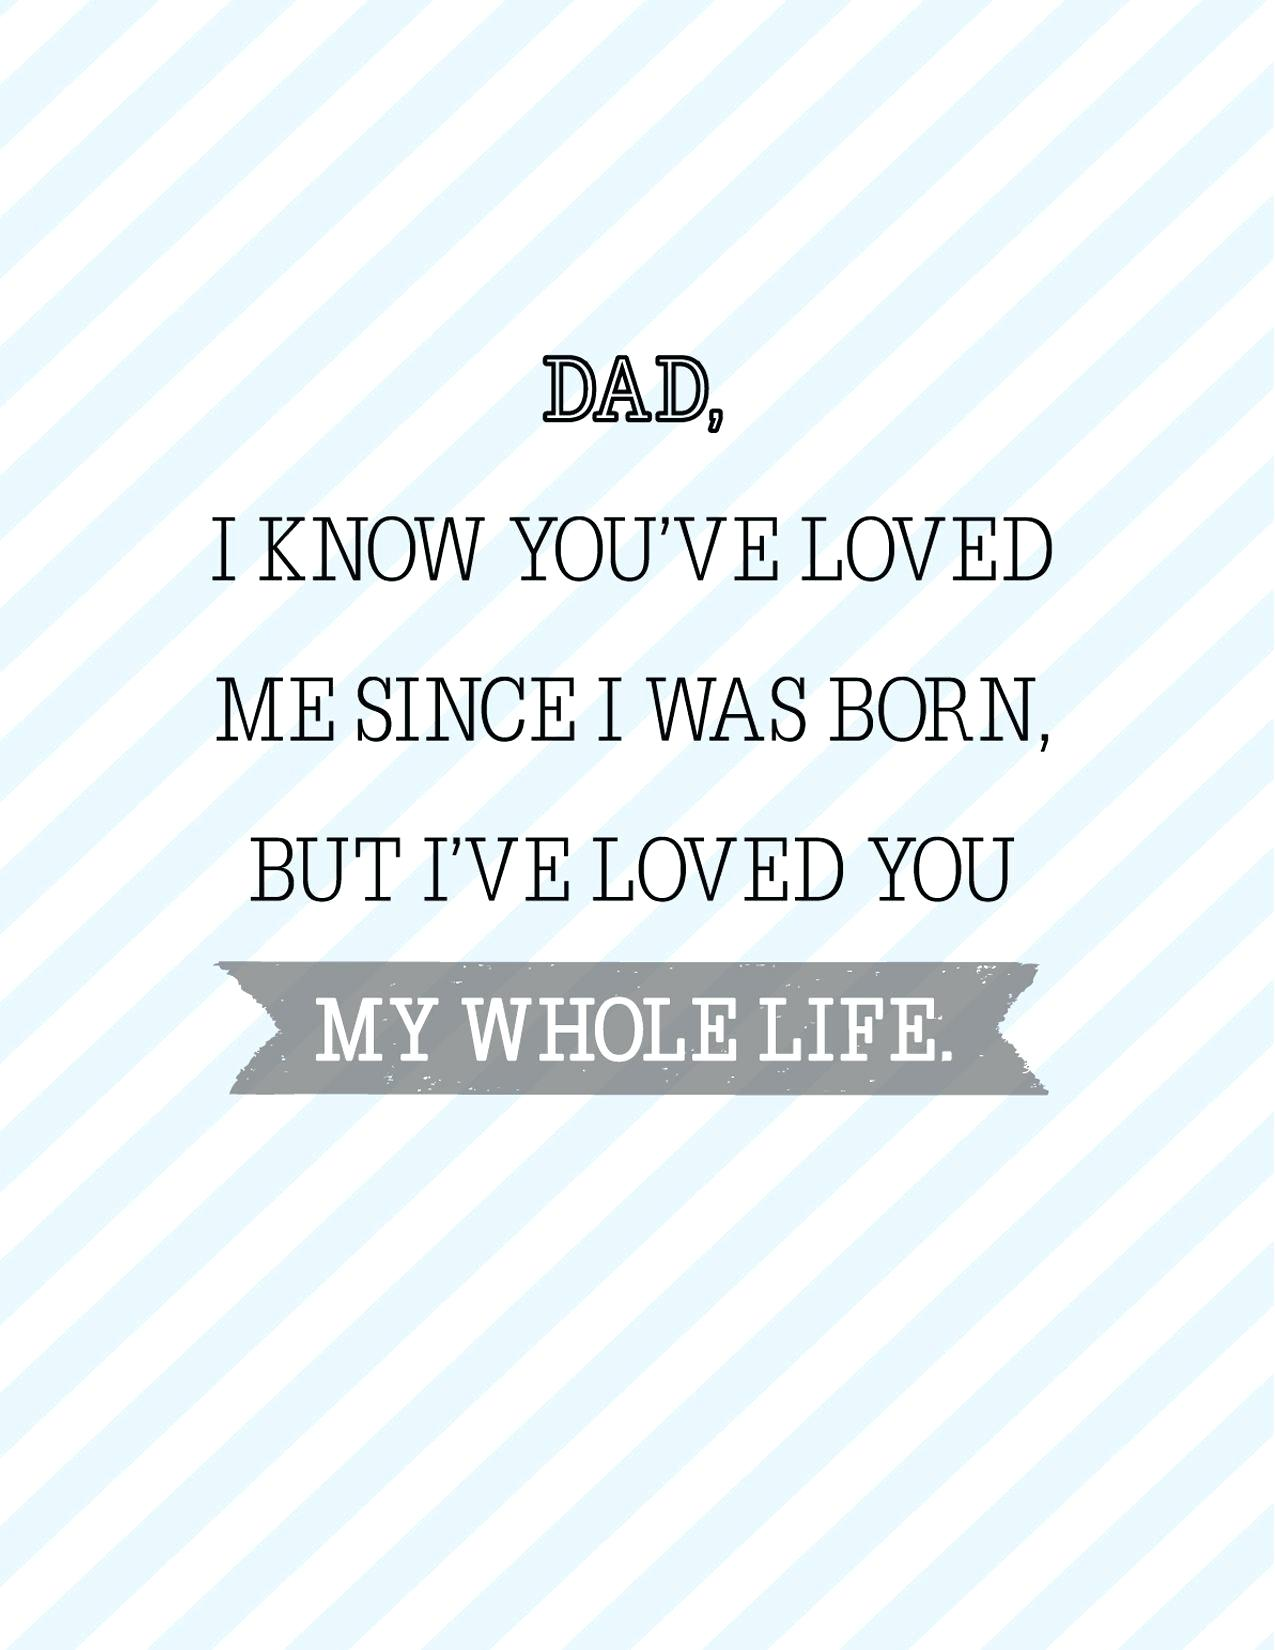 fathers day card sayings free cards loved you dad for uncle